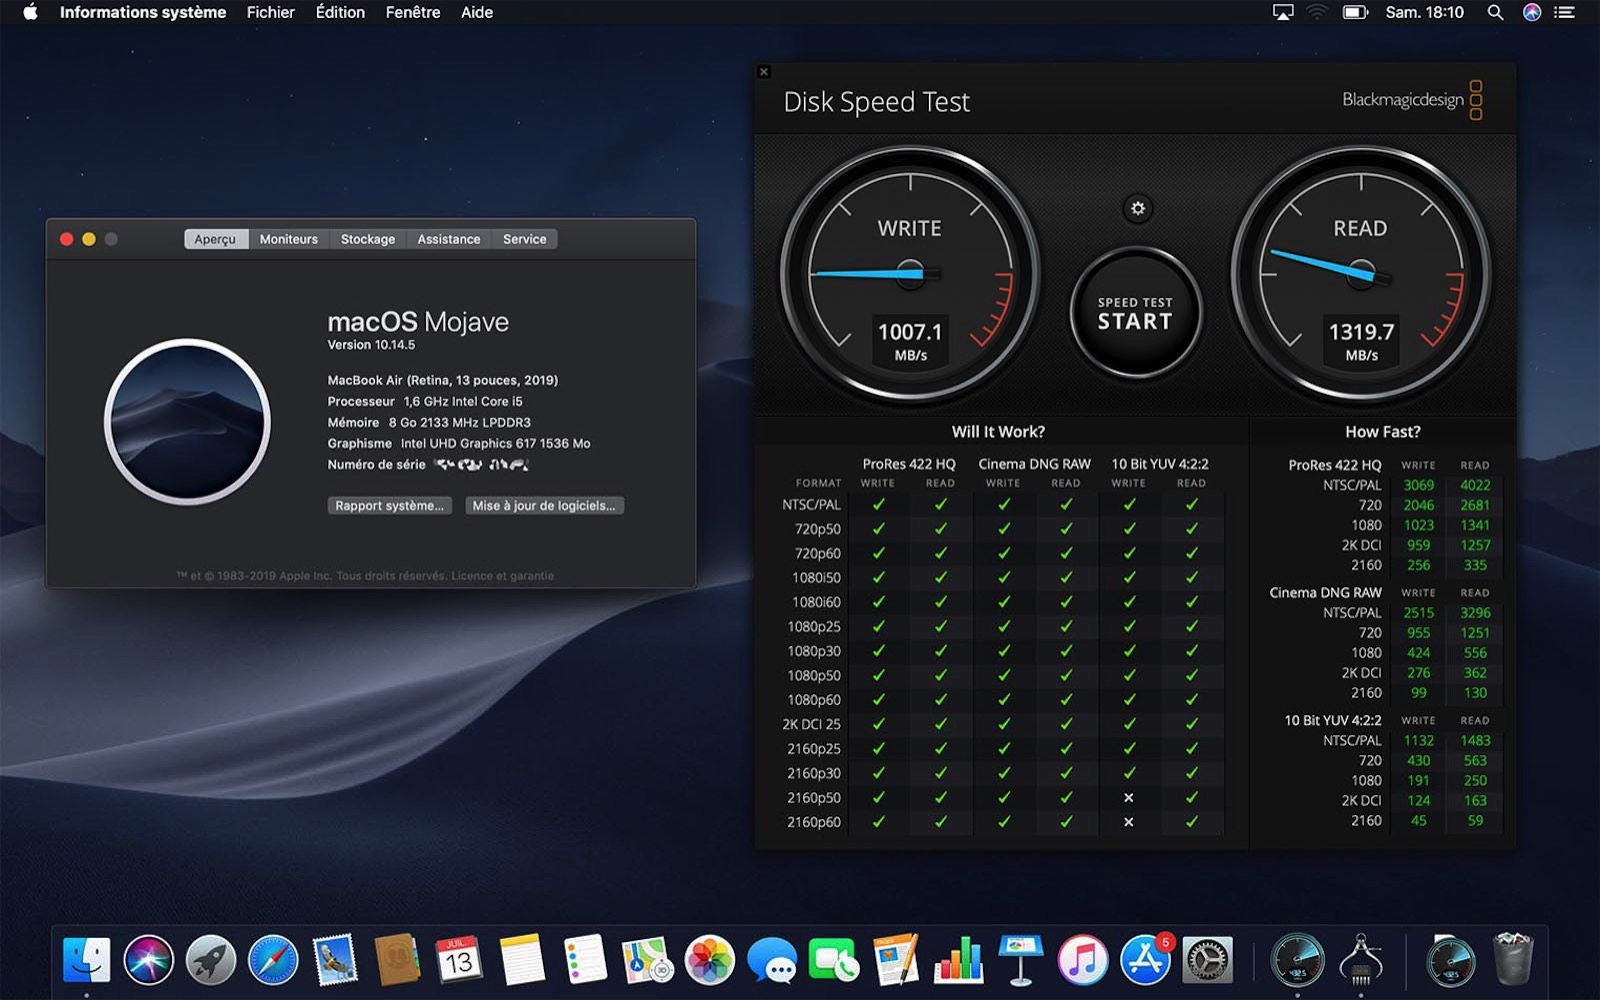 Ssd mba 2019 speed test 256